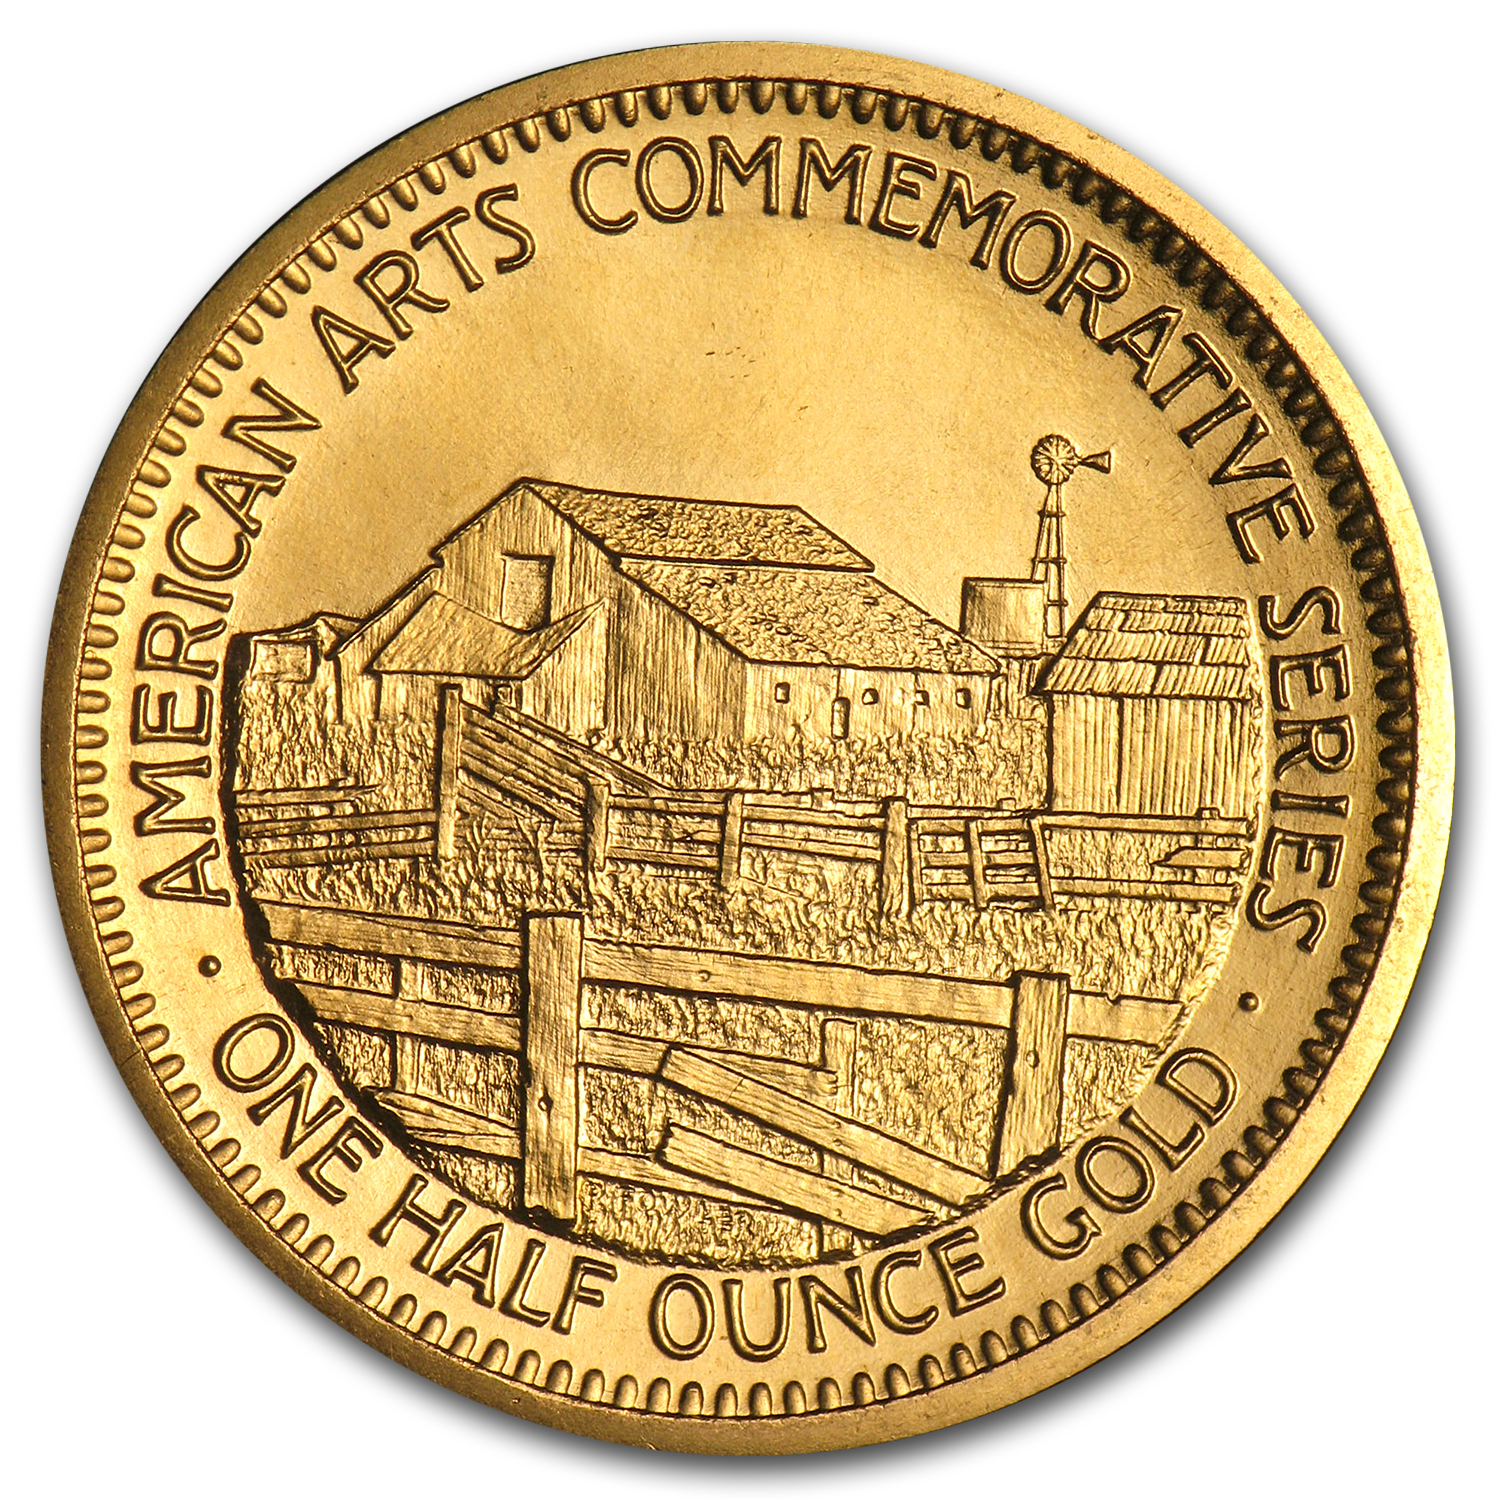 U.S. Mint Gold 1/2 oz John Steinbeck Commemorative Arts Medals